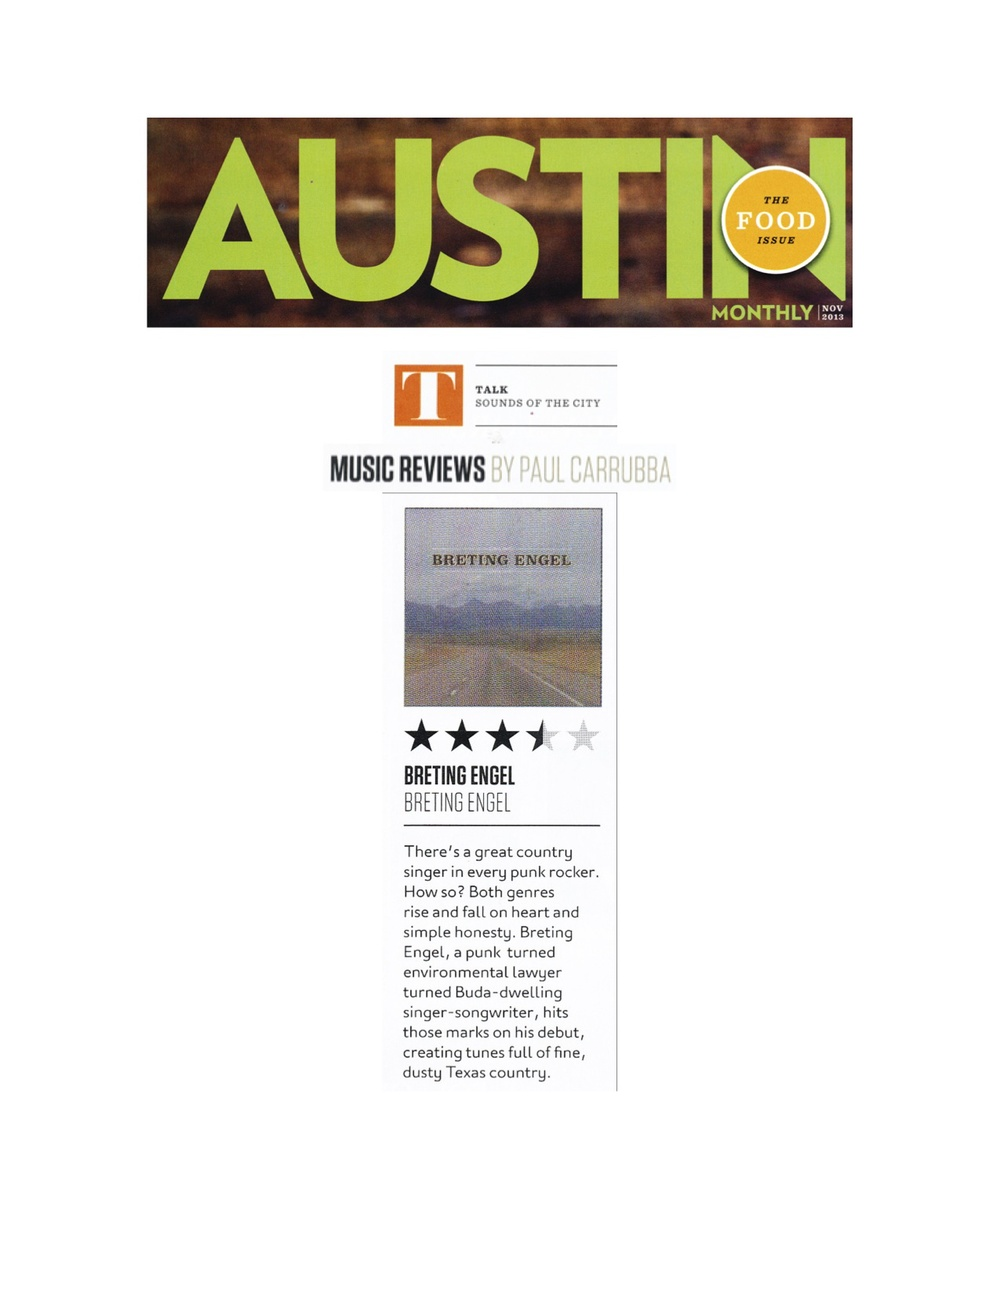 Big Bend Records_Breting Engel_Austin Monthly_October 2013 jpeg.jpg